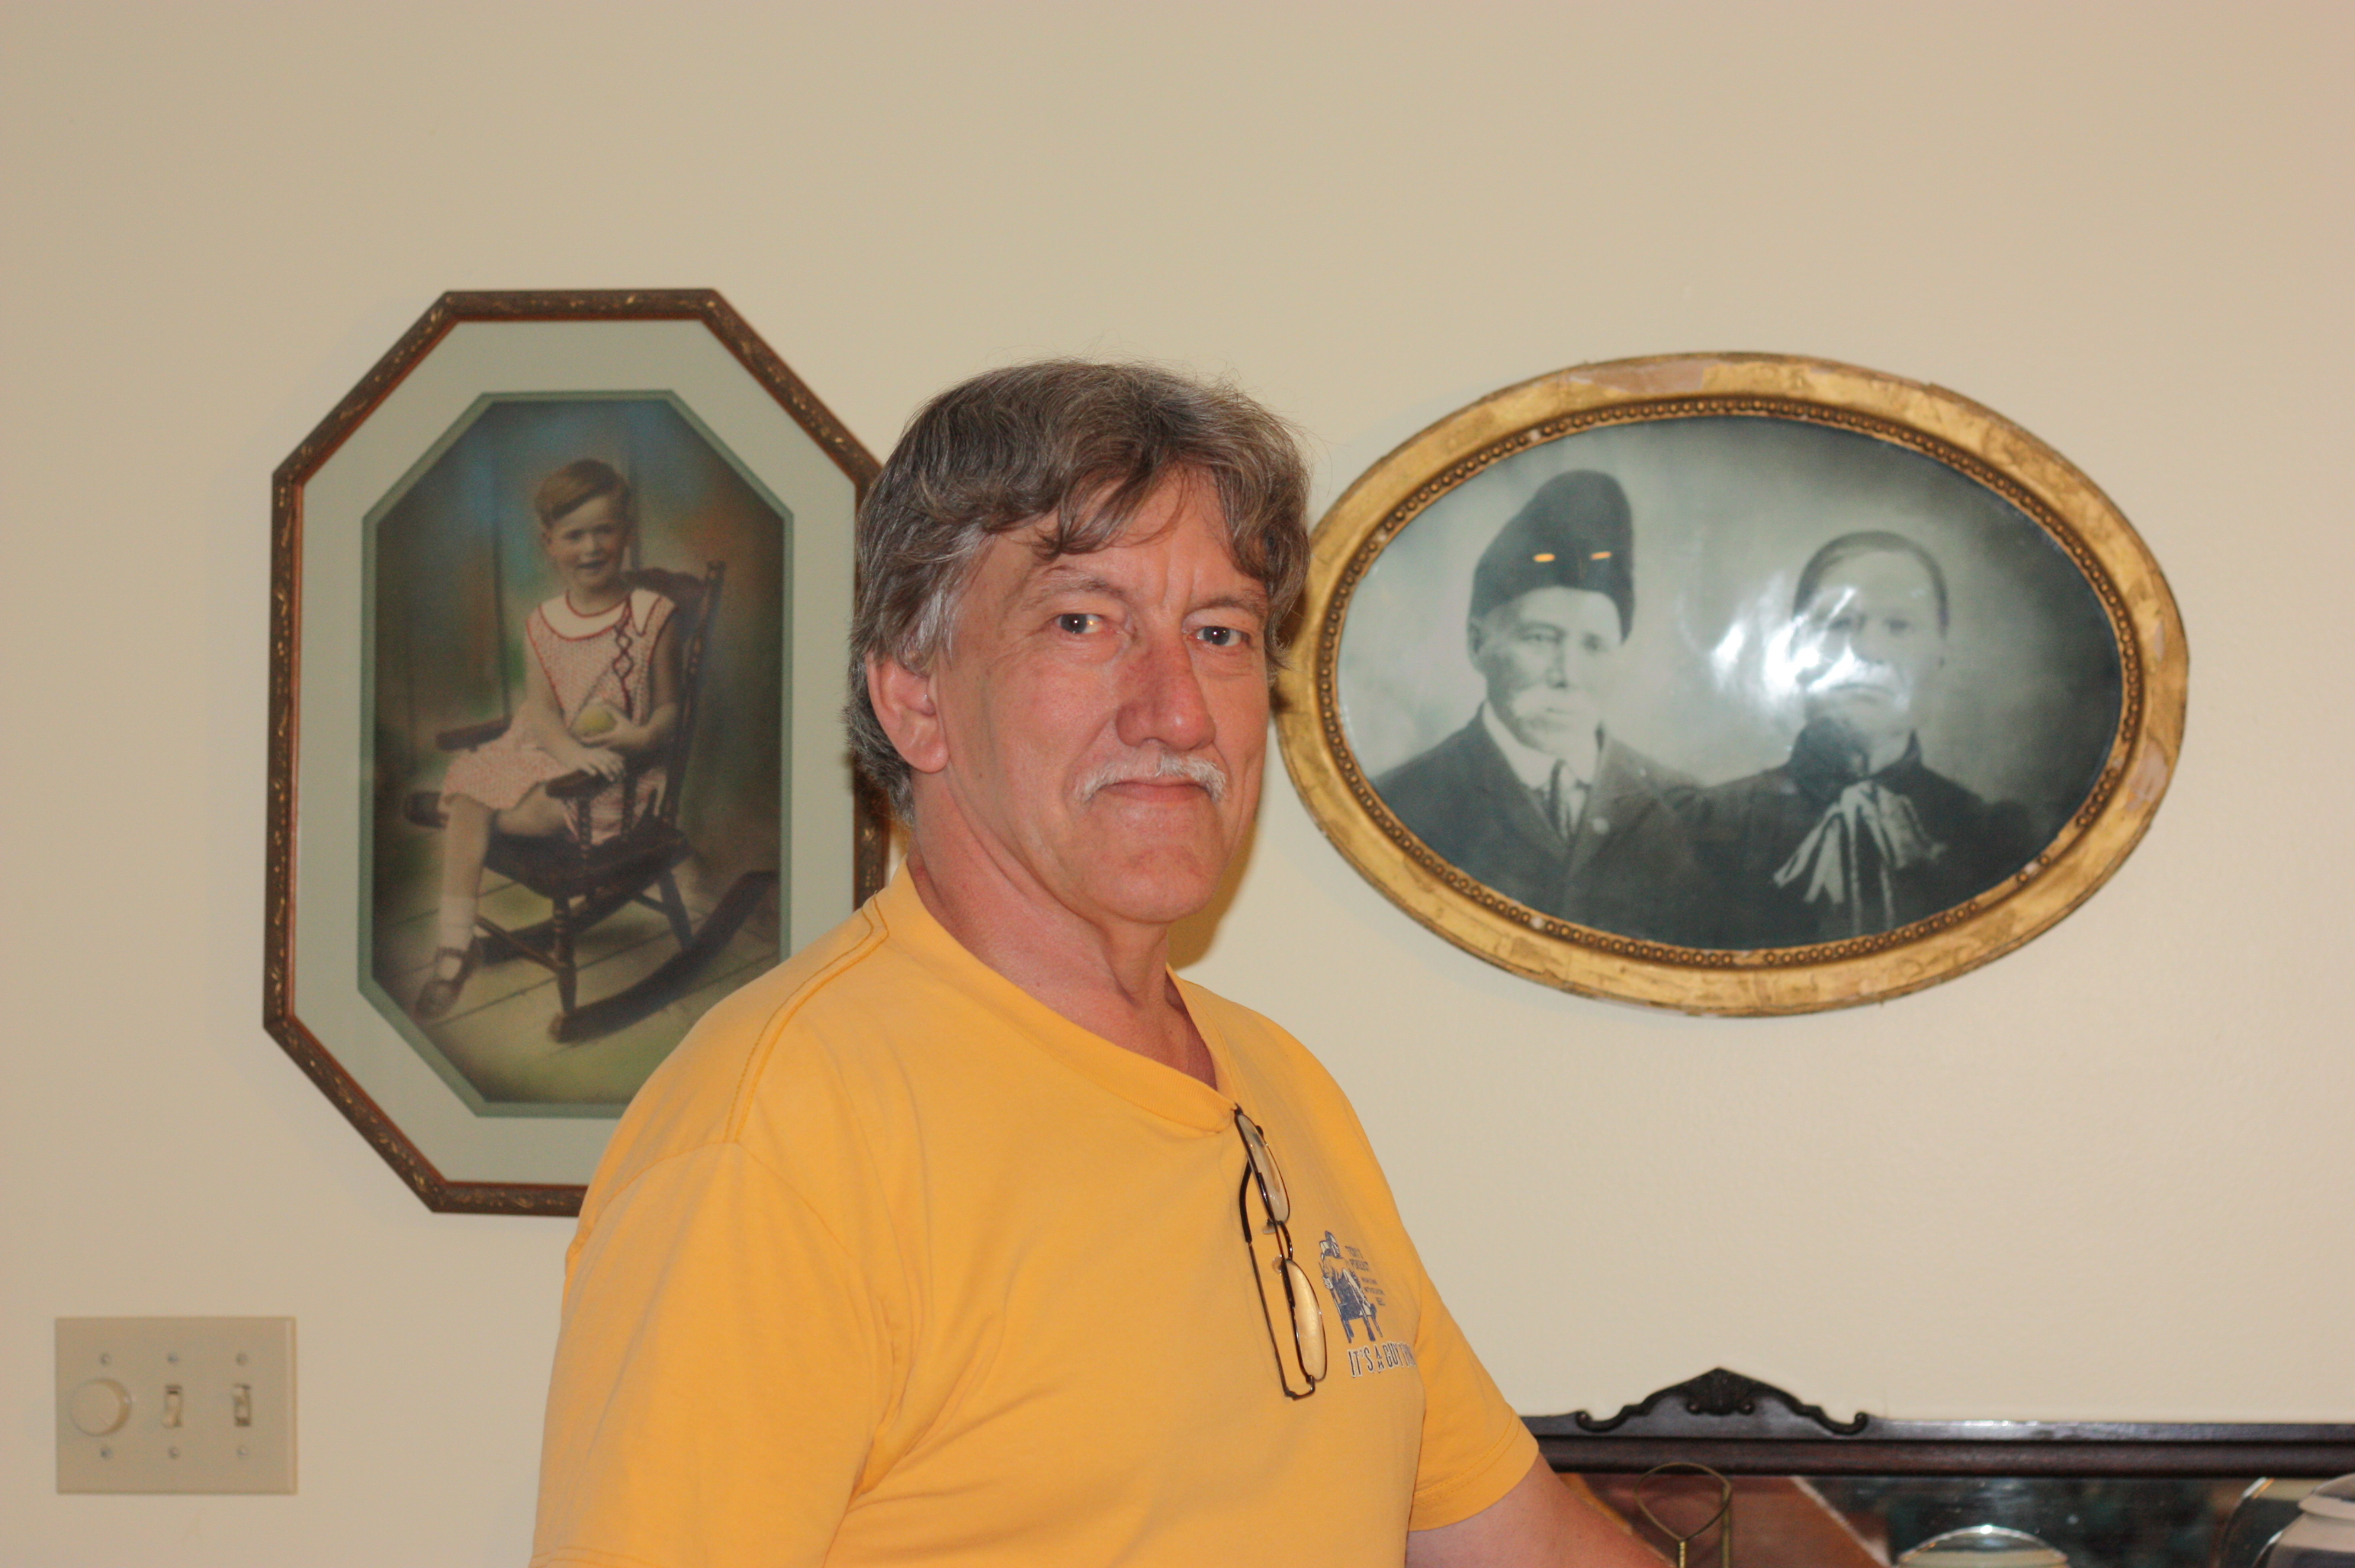 Here's Don at his home. He's standing in front of some old photos on his dining room wall. The photo on the left is his aunt, Jeannine Miller who's now 87. The other photo  is Don's wife Georgette's great-great grandparents.